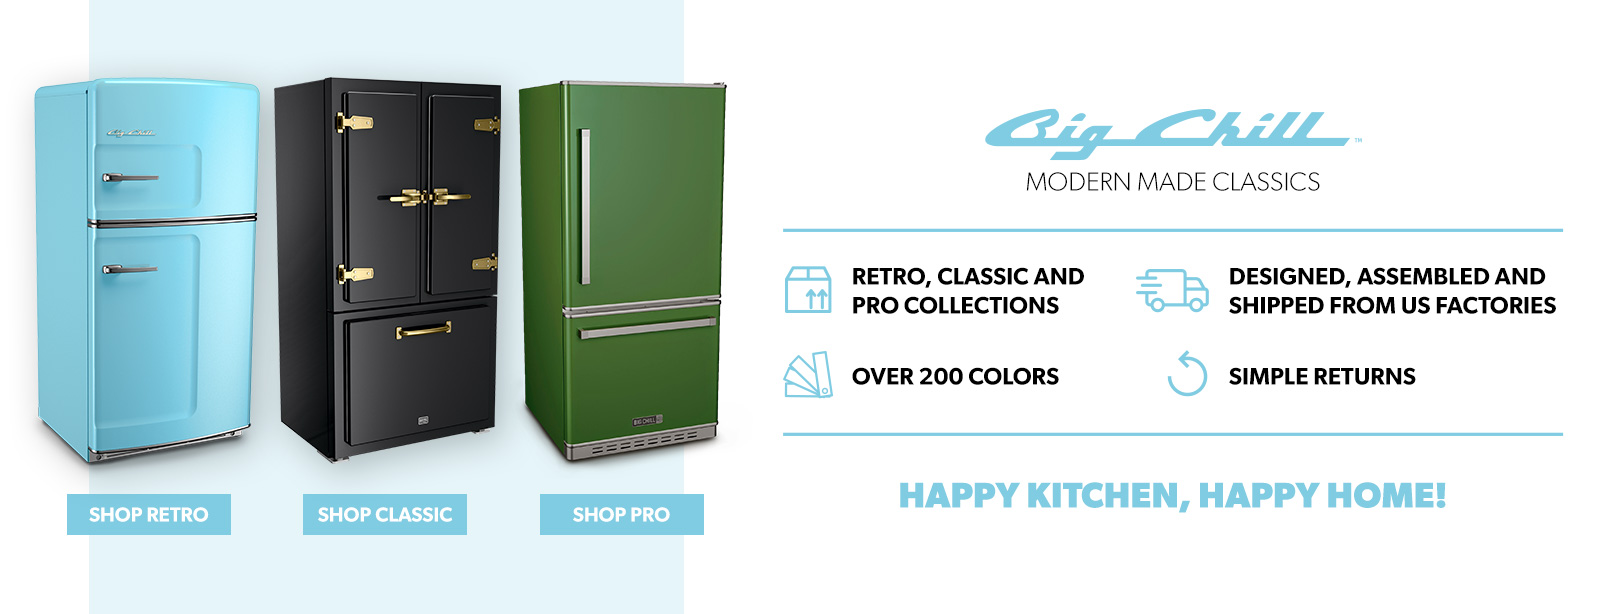 Cucina A Gas Vintage Retro And Professional Kitchen Appliances Big Chill